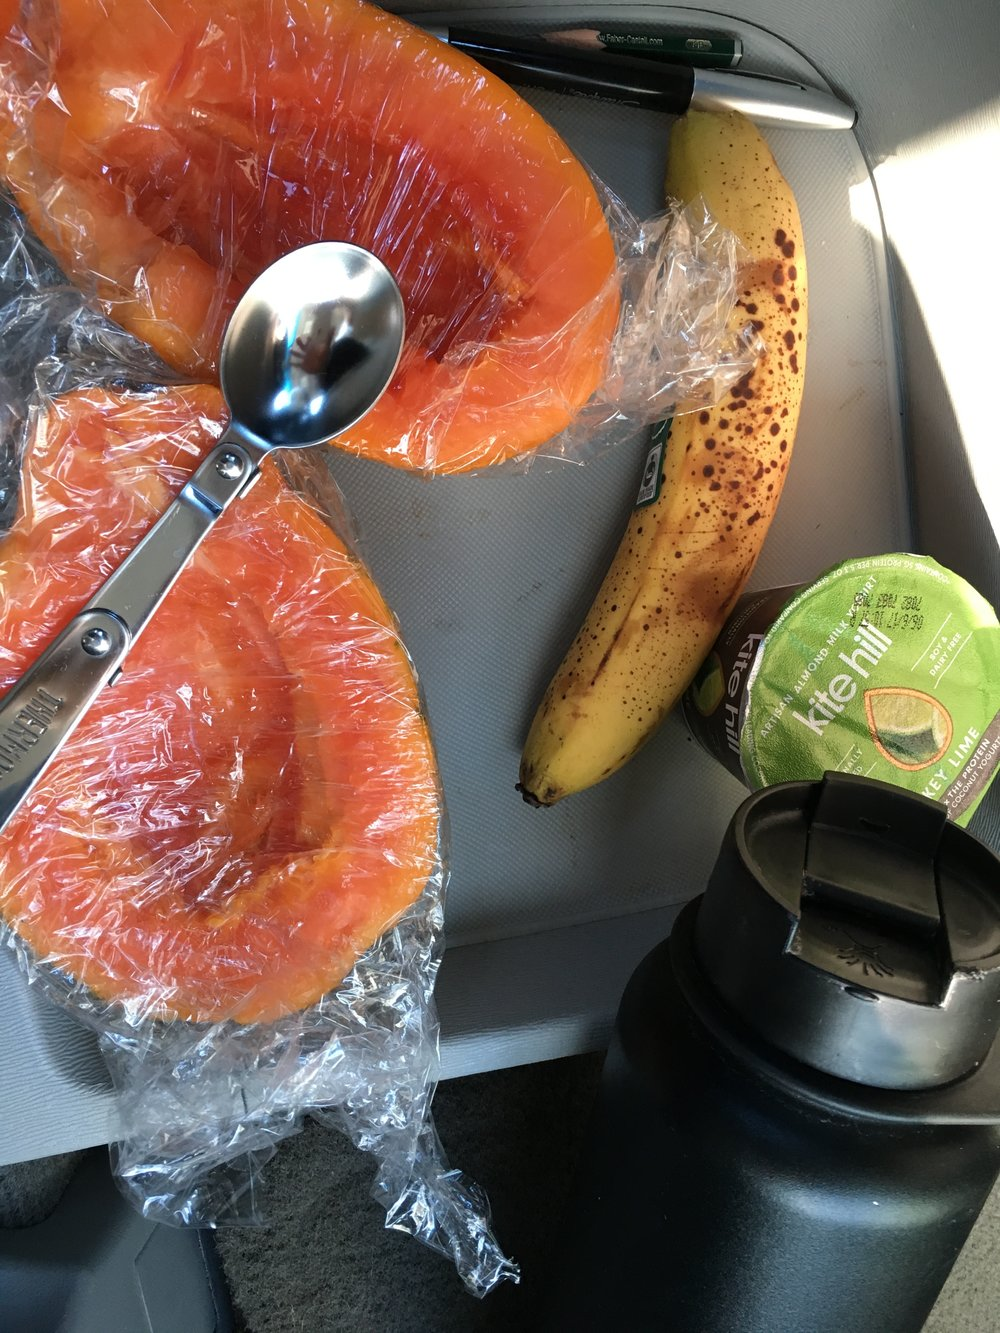 Breakfast on the go: organic papaya and banana with almond yogurt and water.